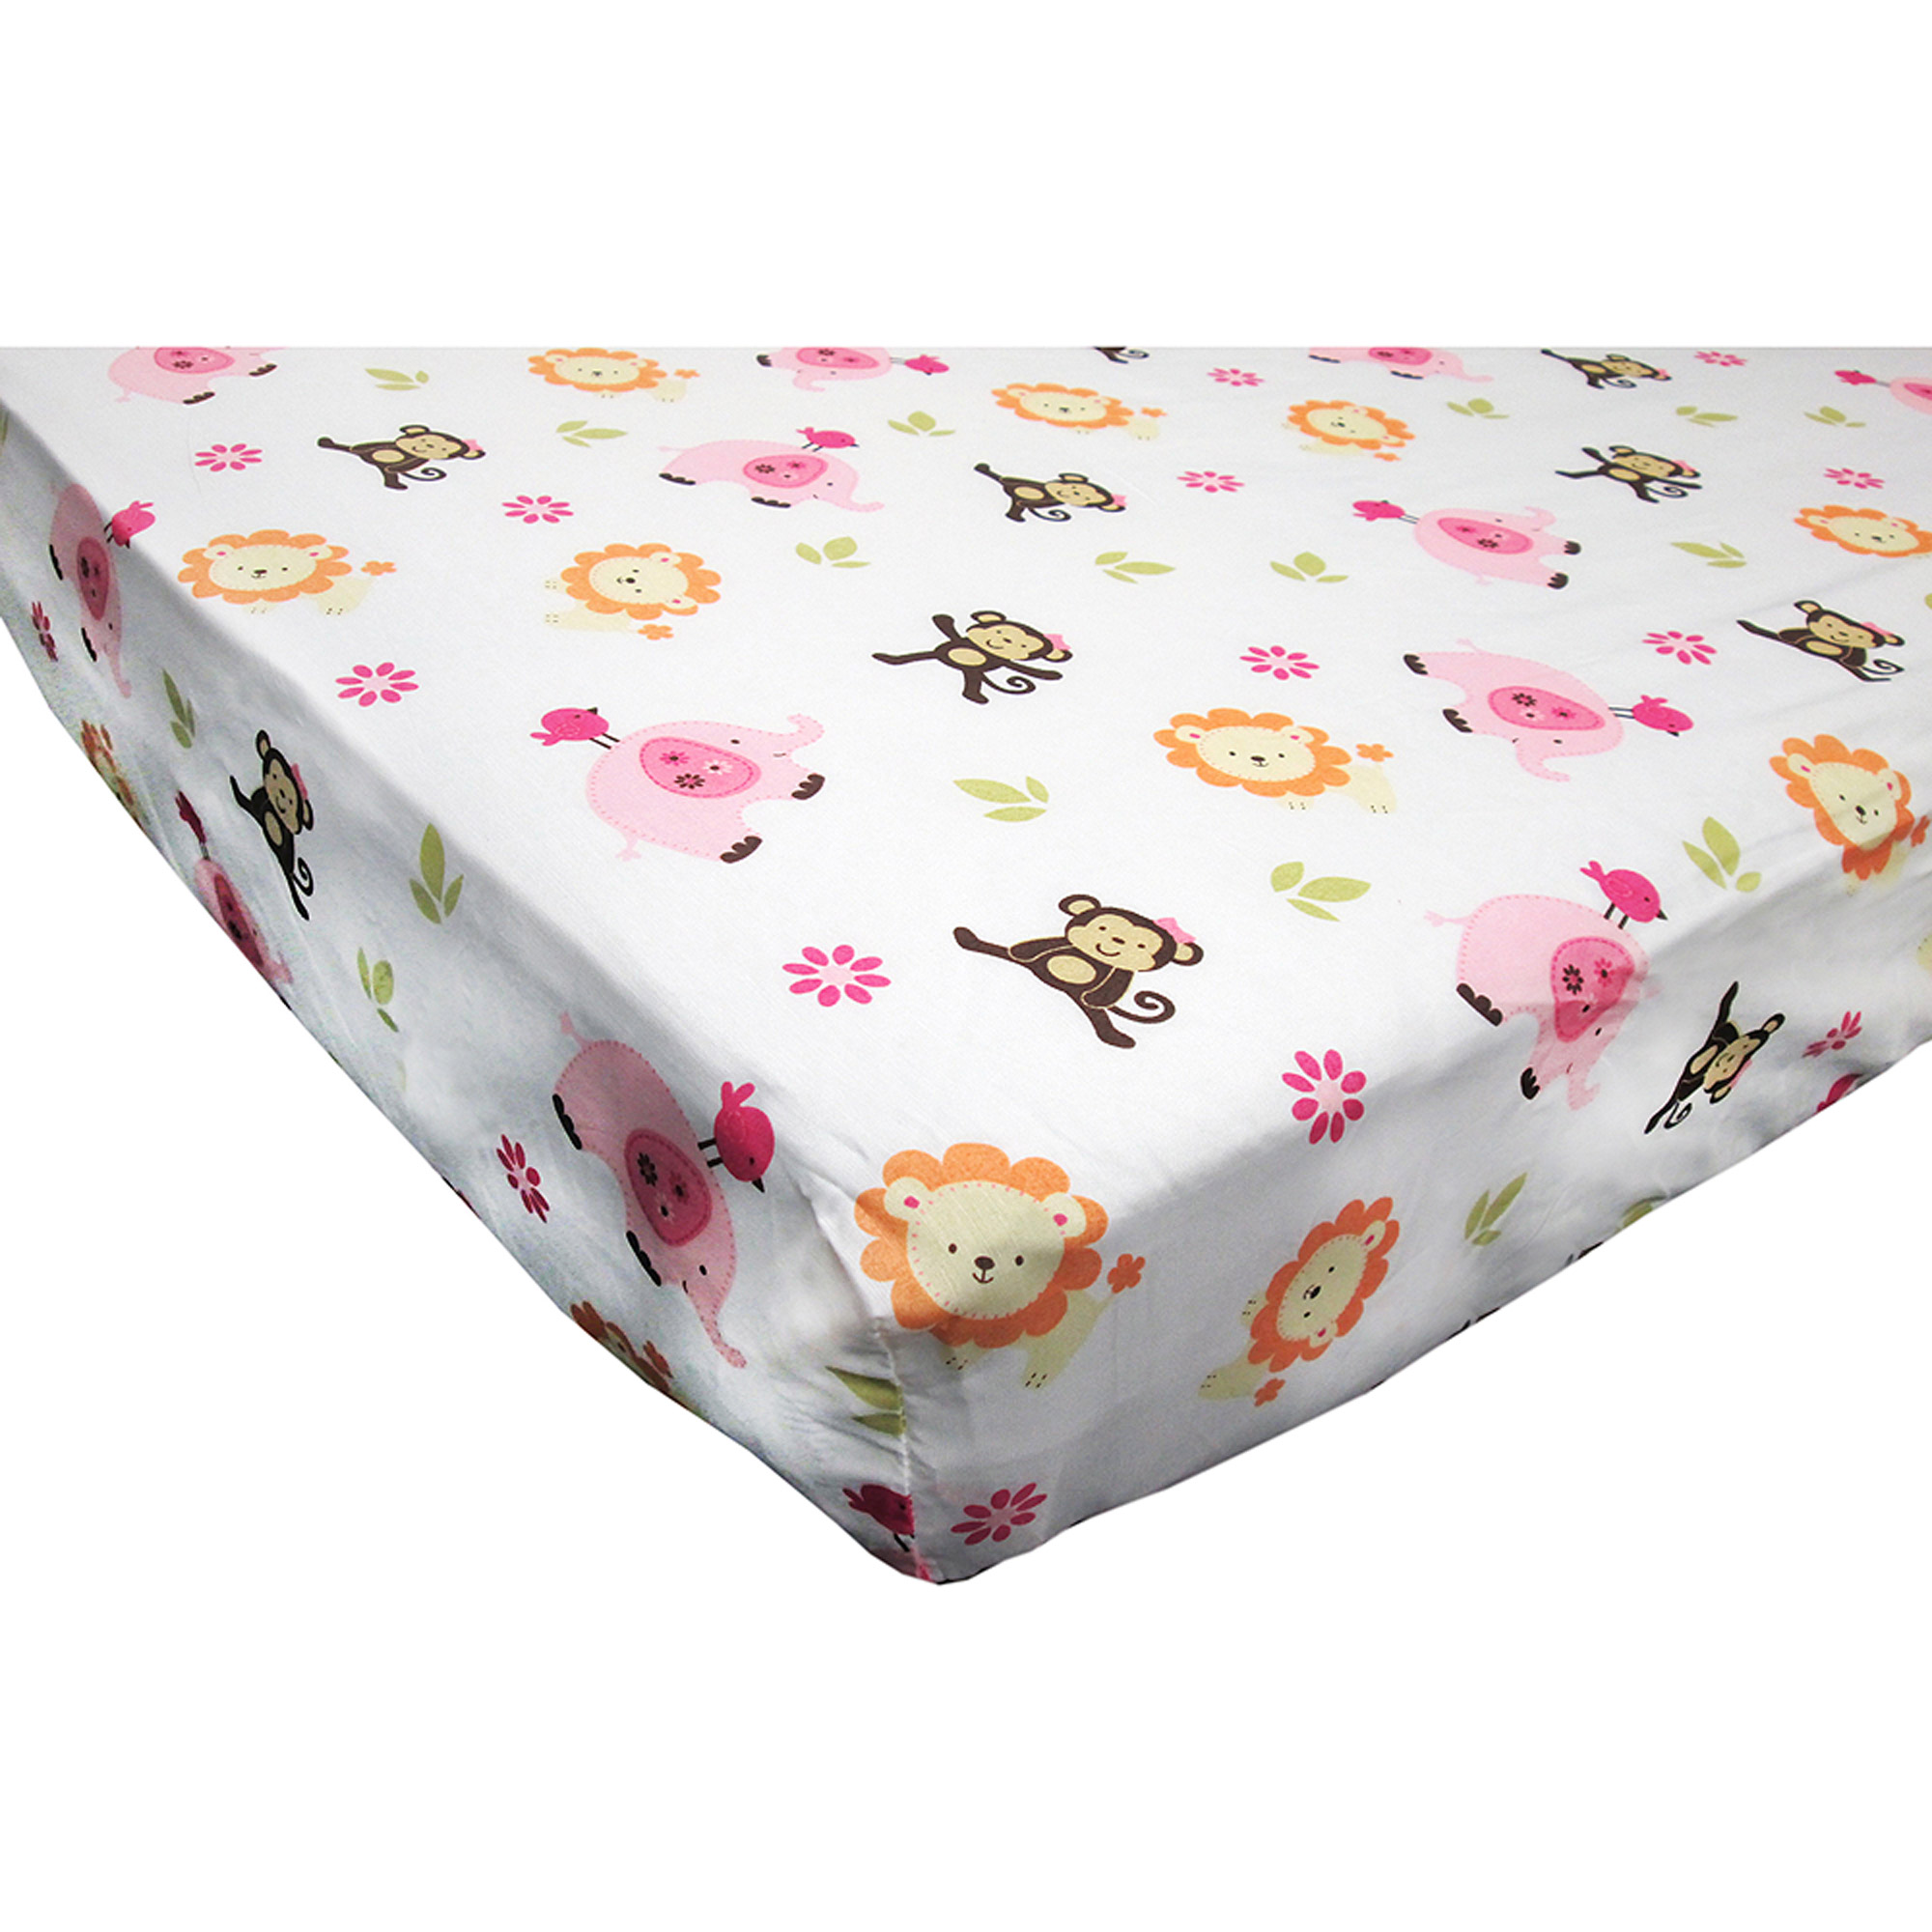 Little Bedding by NoJo Raspberry Jungle Crib Sheet